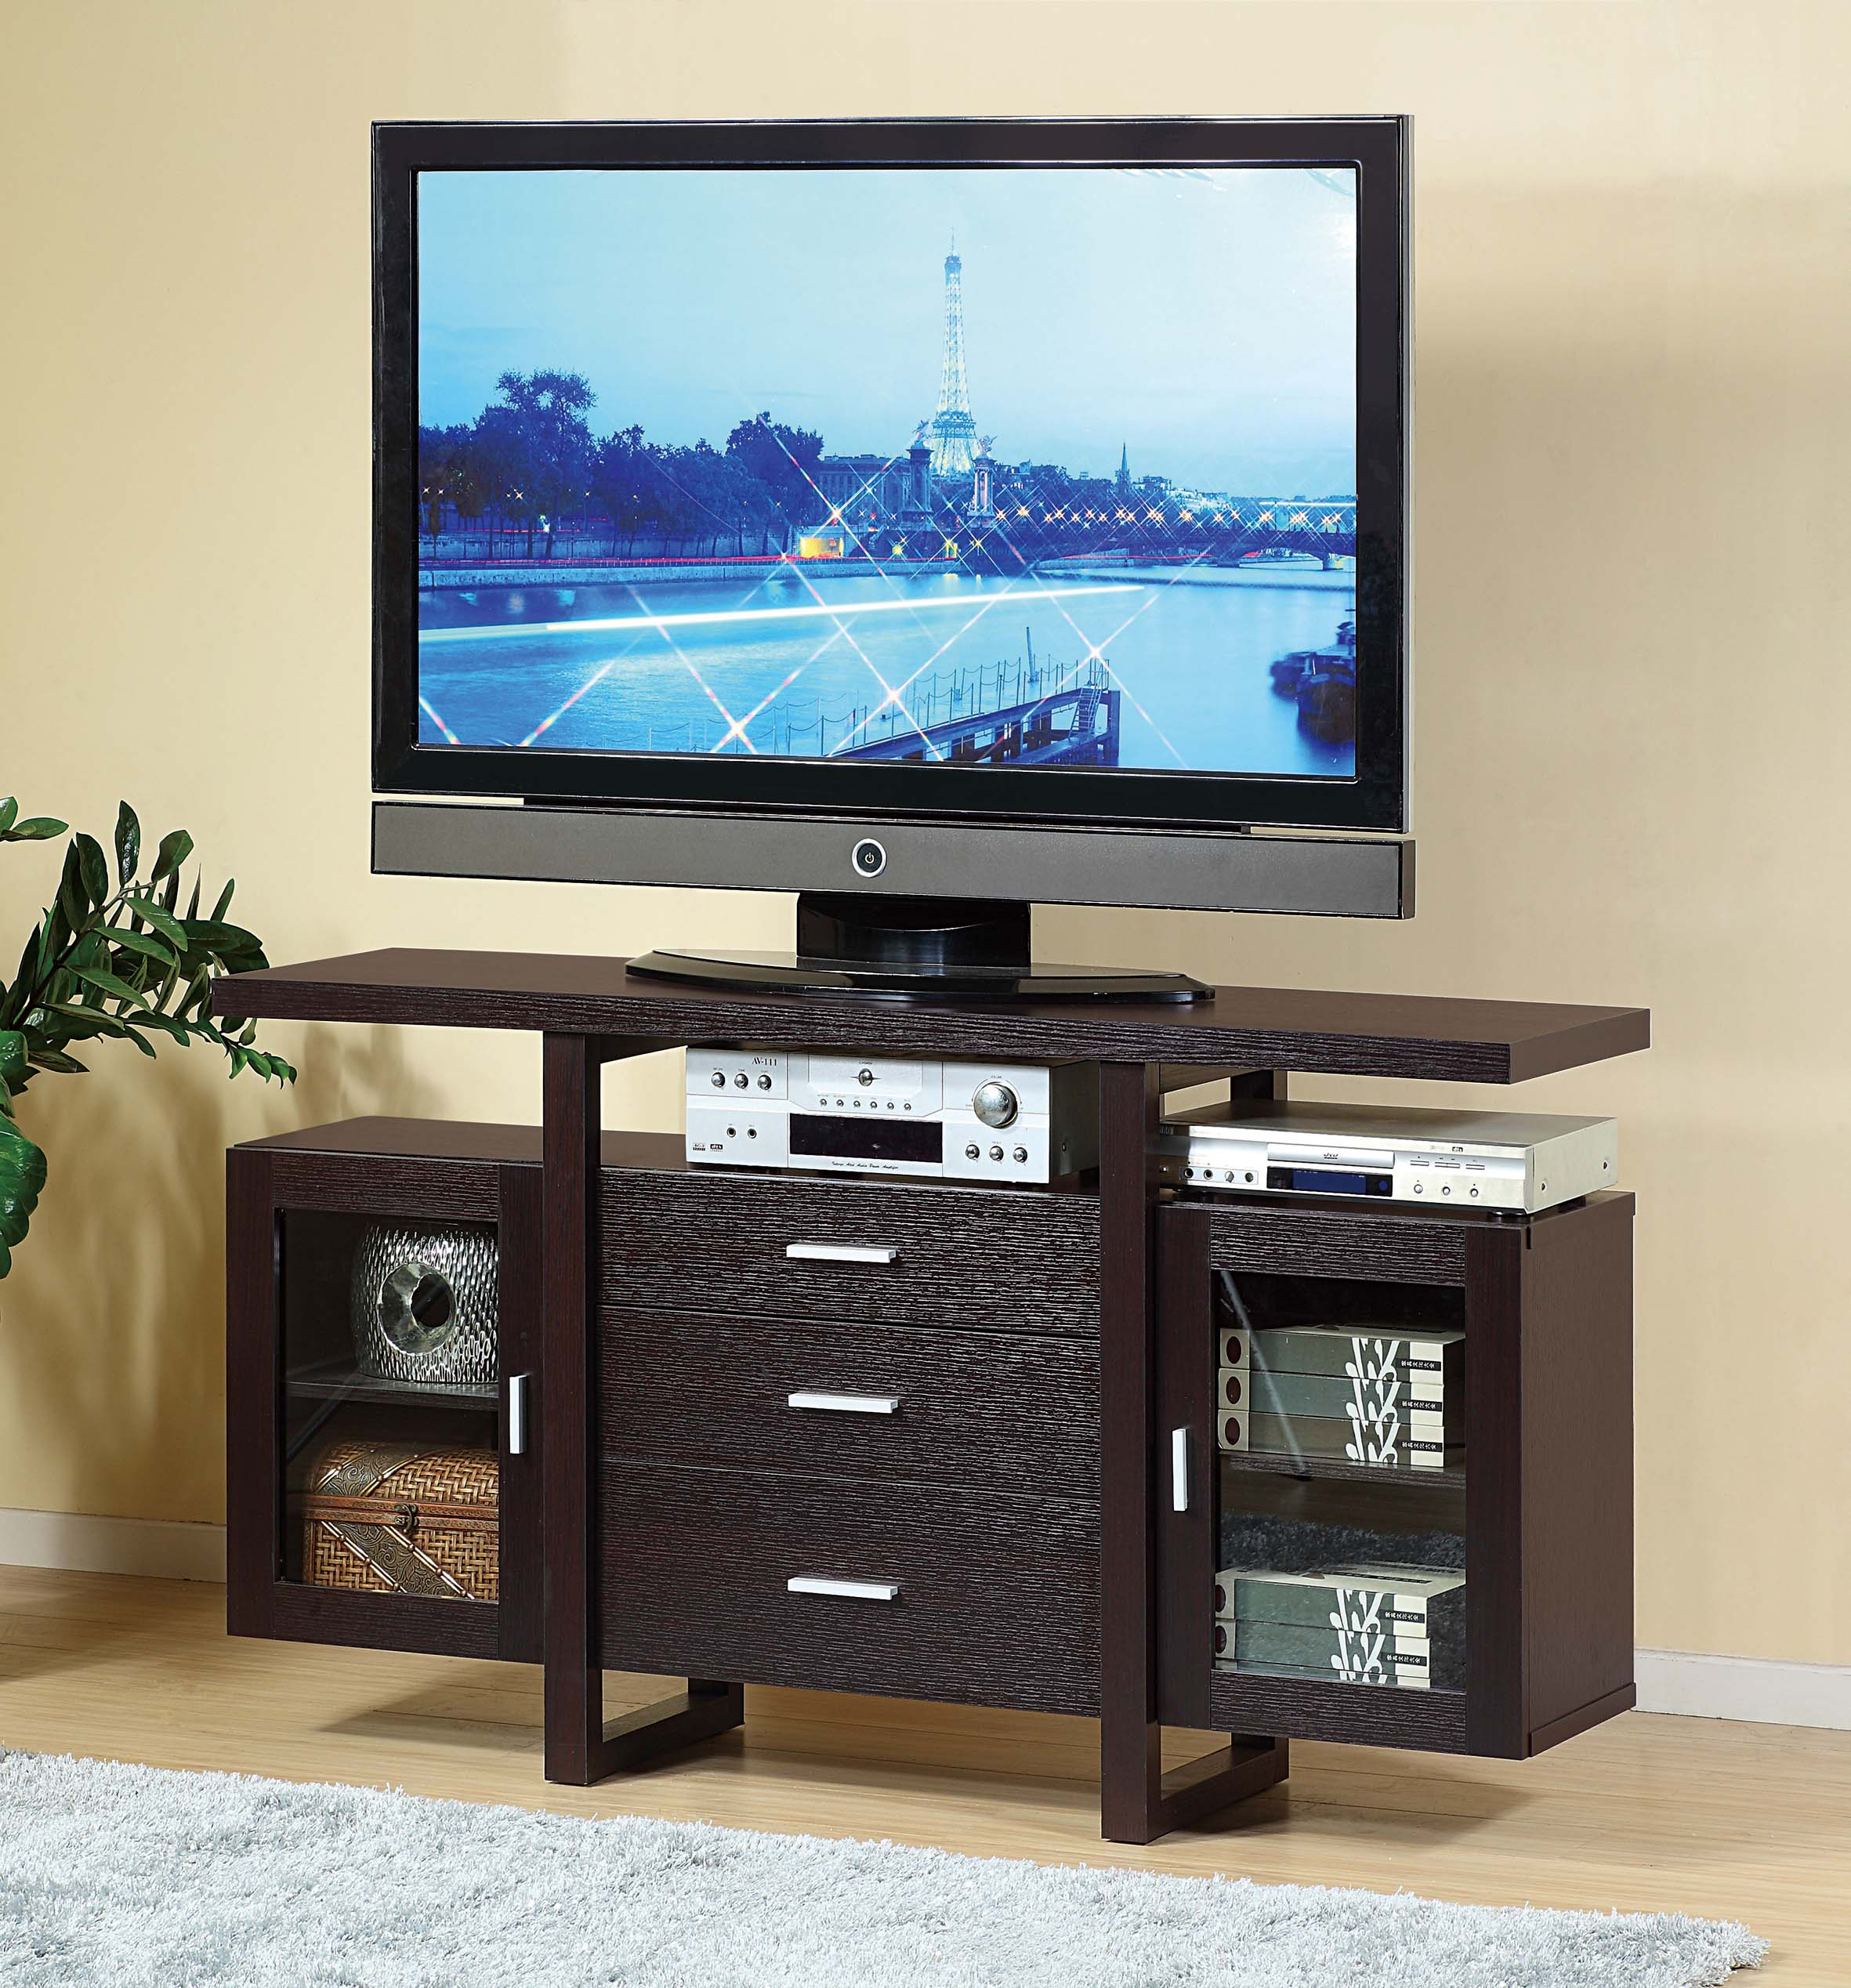 Id Usa Tv Stand 14901 Furniture Mattress Los Angeles And El Monte # Image Table Tv En Melamine